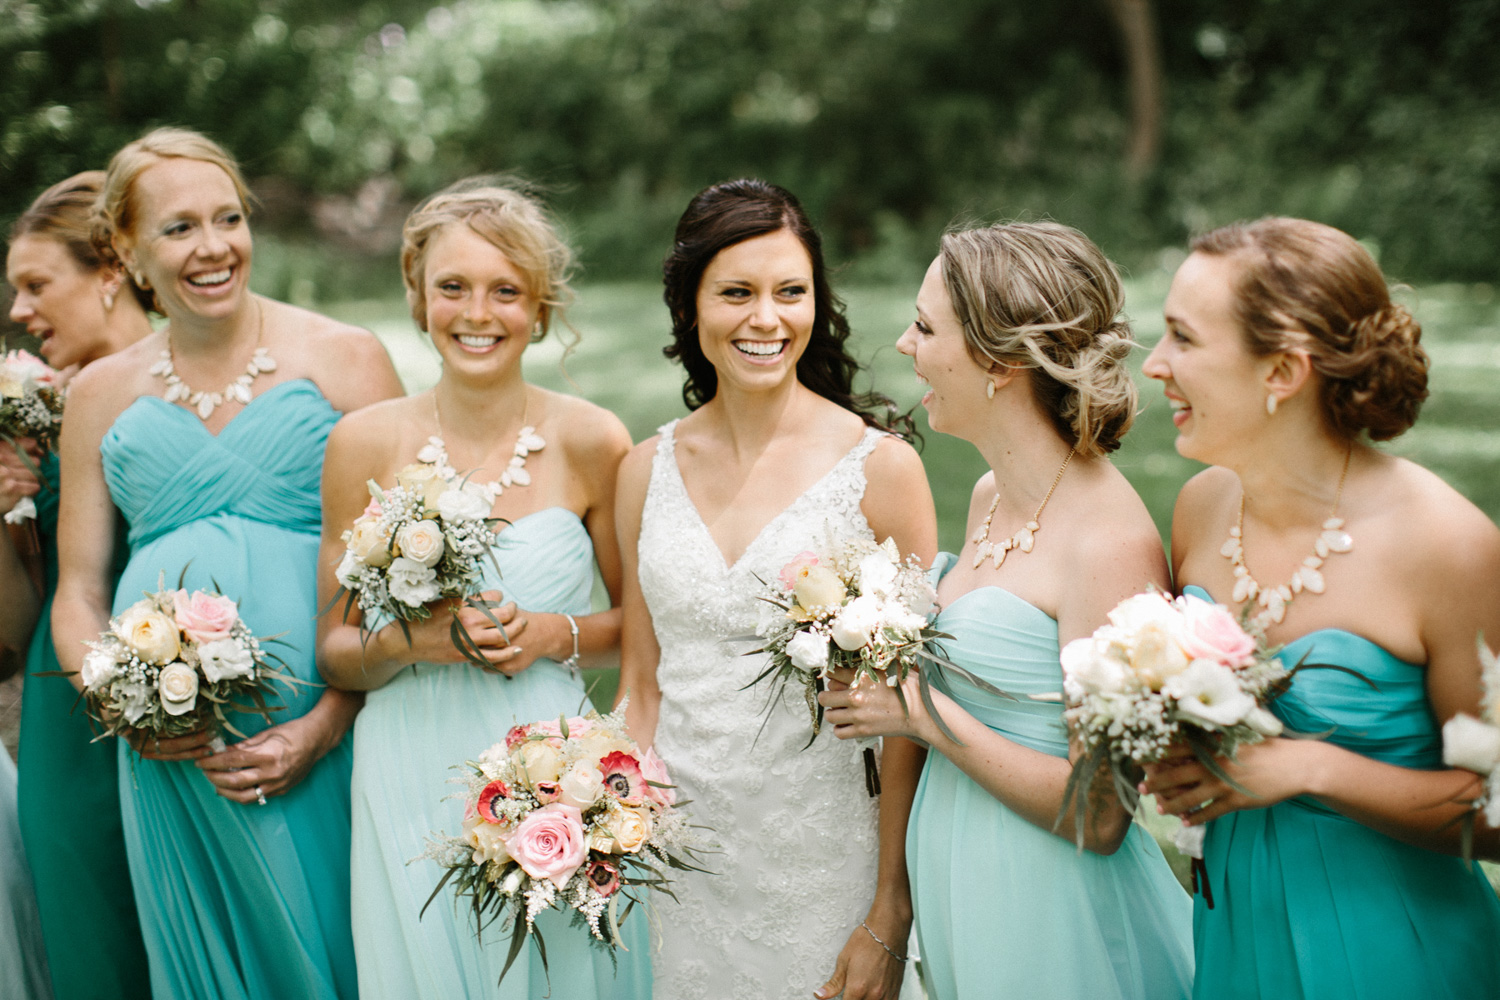 Outdoor_Wedding_SiouxFalls_MaryJoWegnerArboretum_Photographer_Calli&Jon_051.jpg